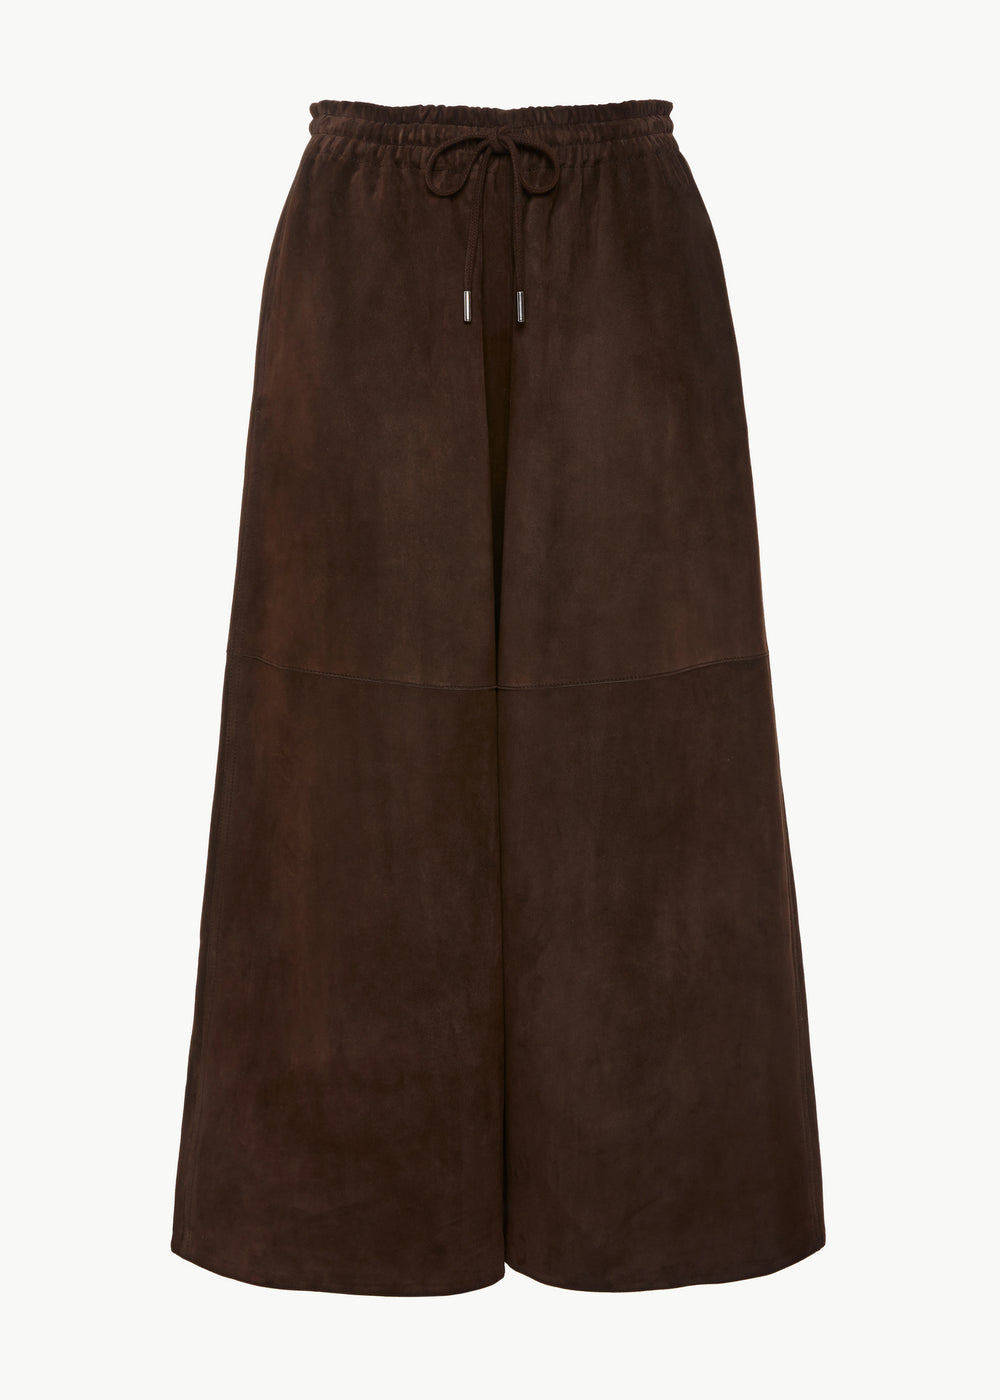 Drawstring Pant in Suede - CO